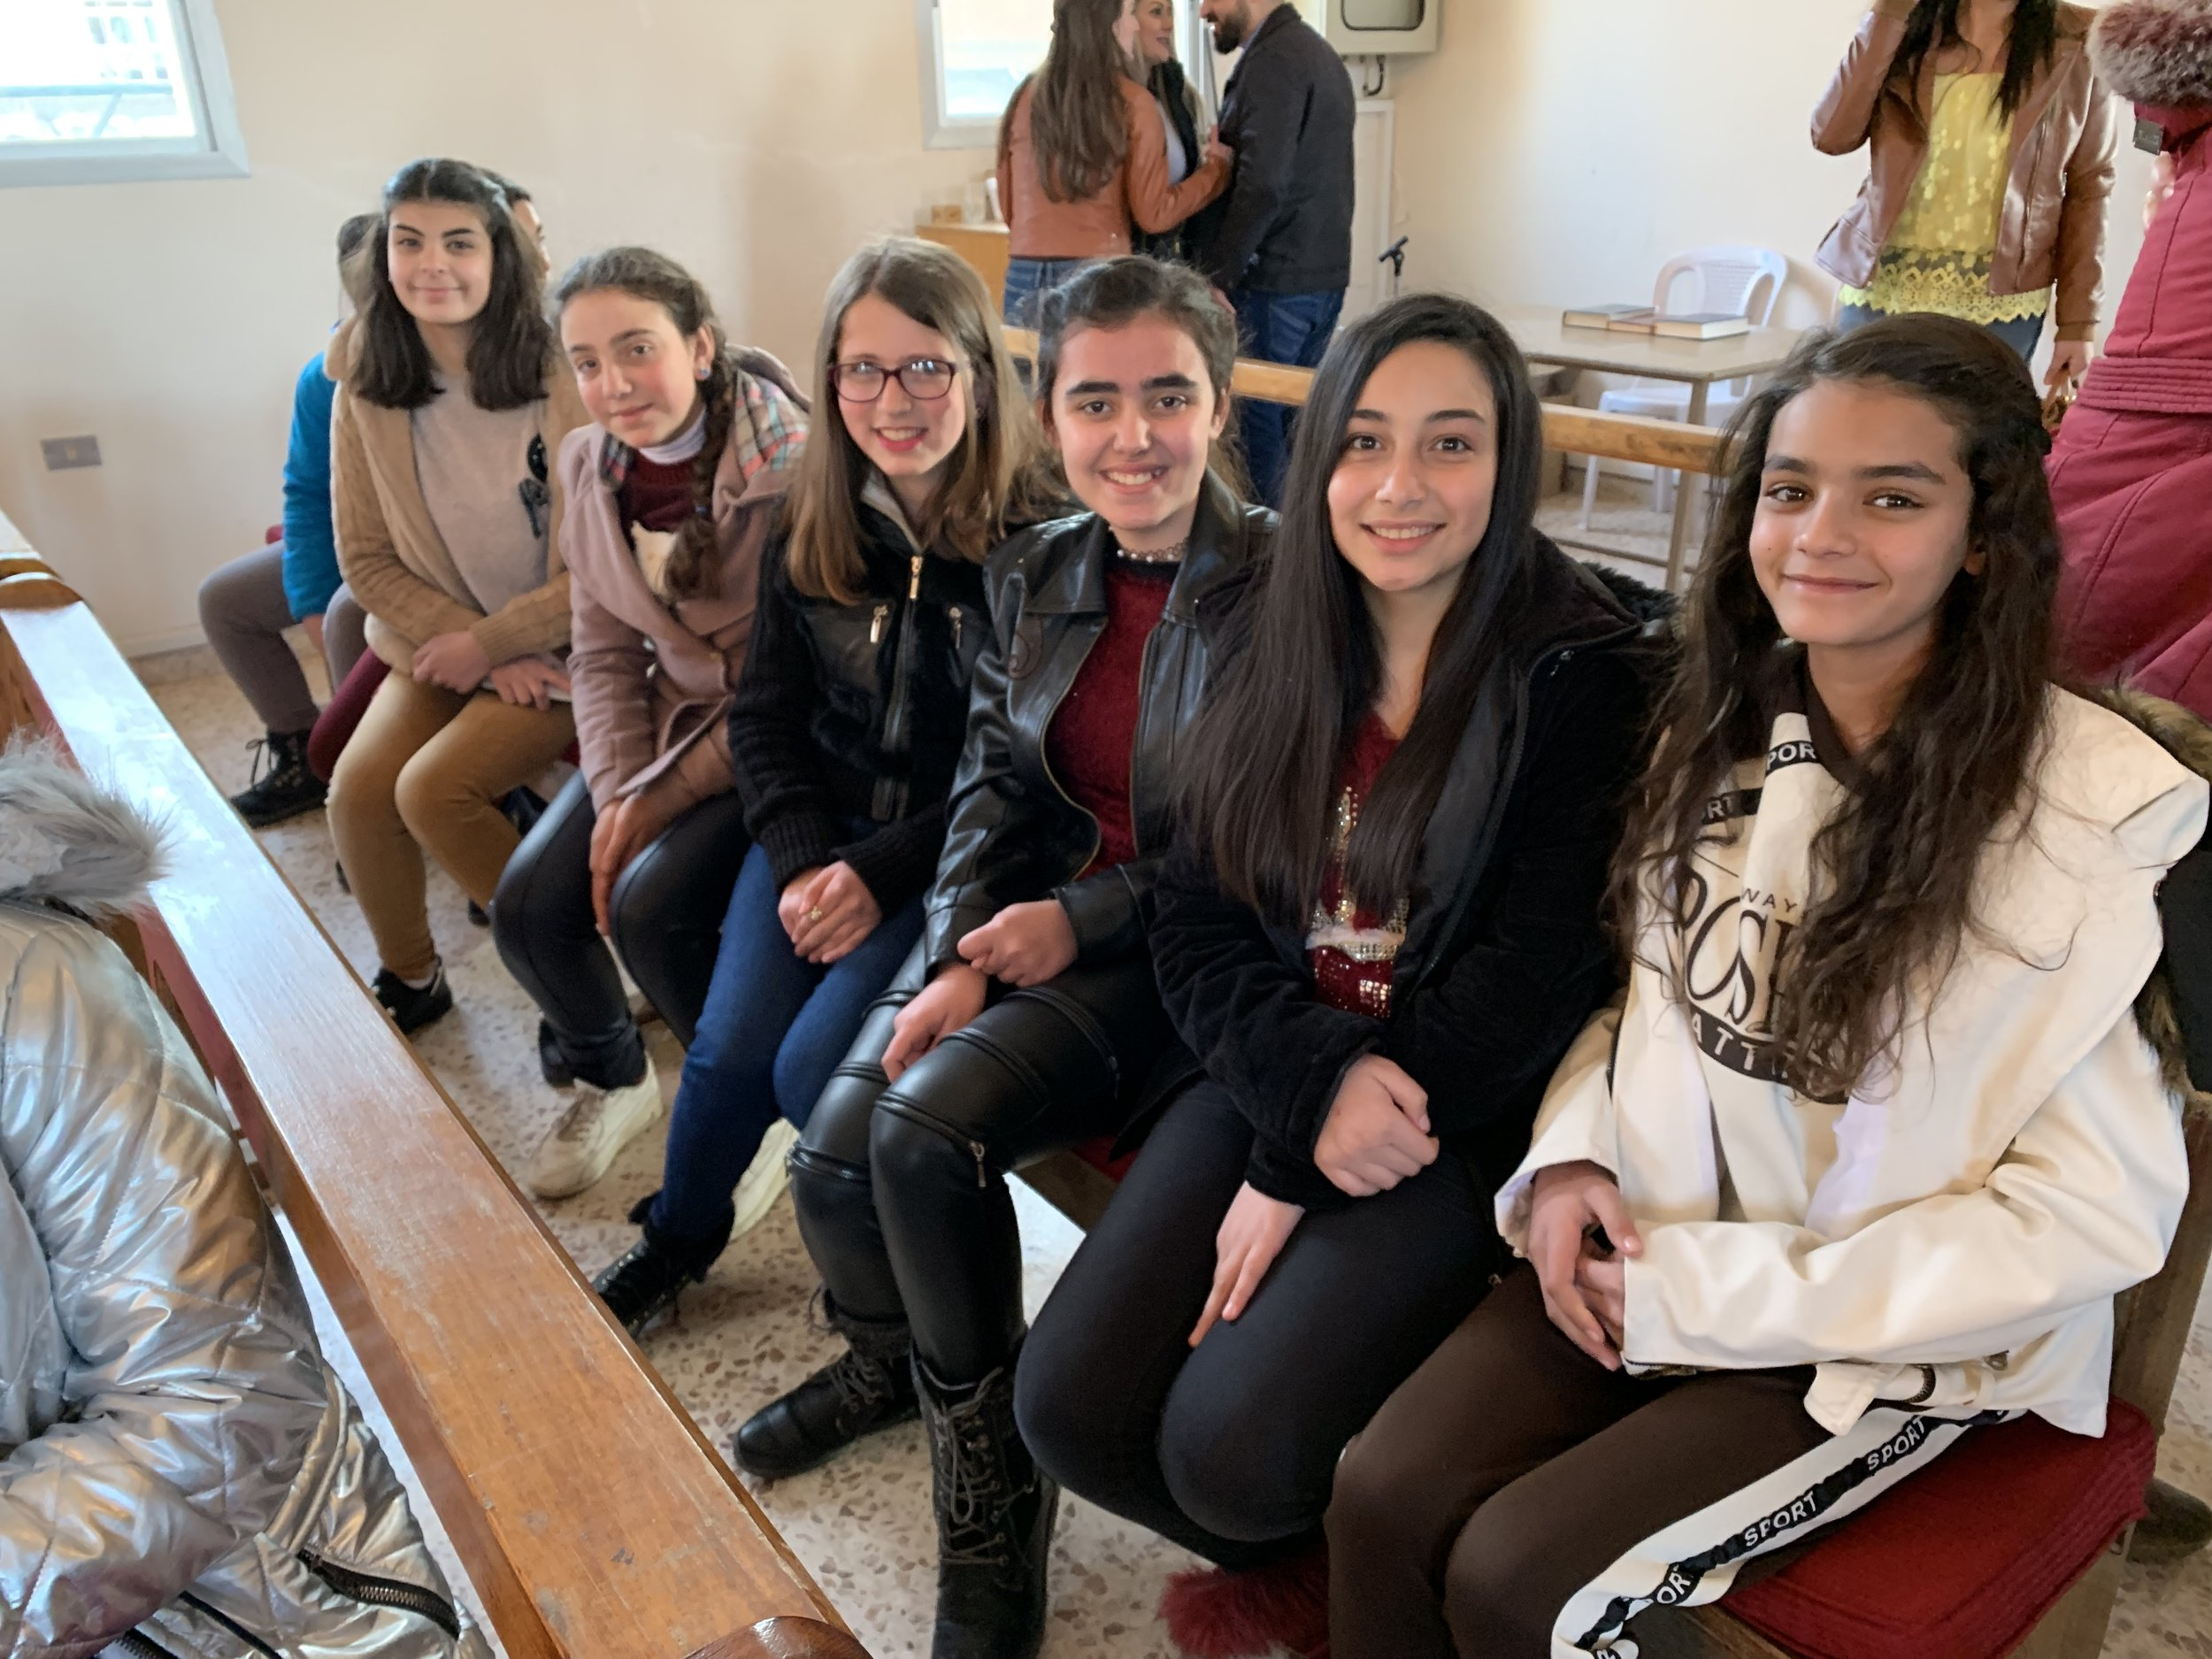 Yes, this is the future of the Church in Syria!